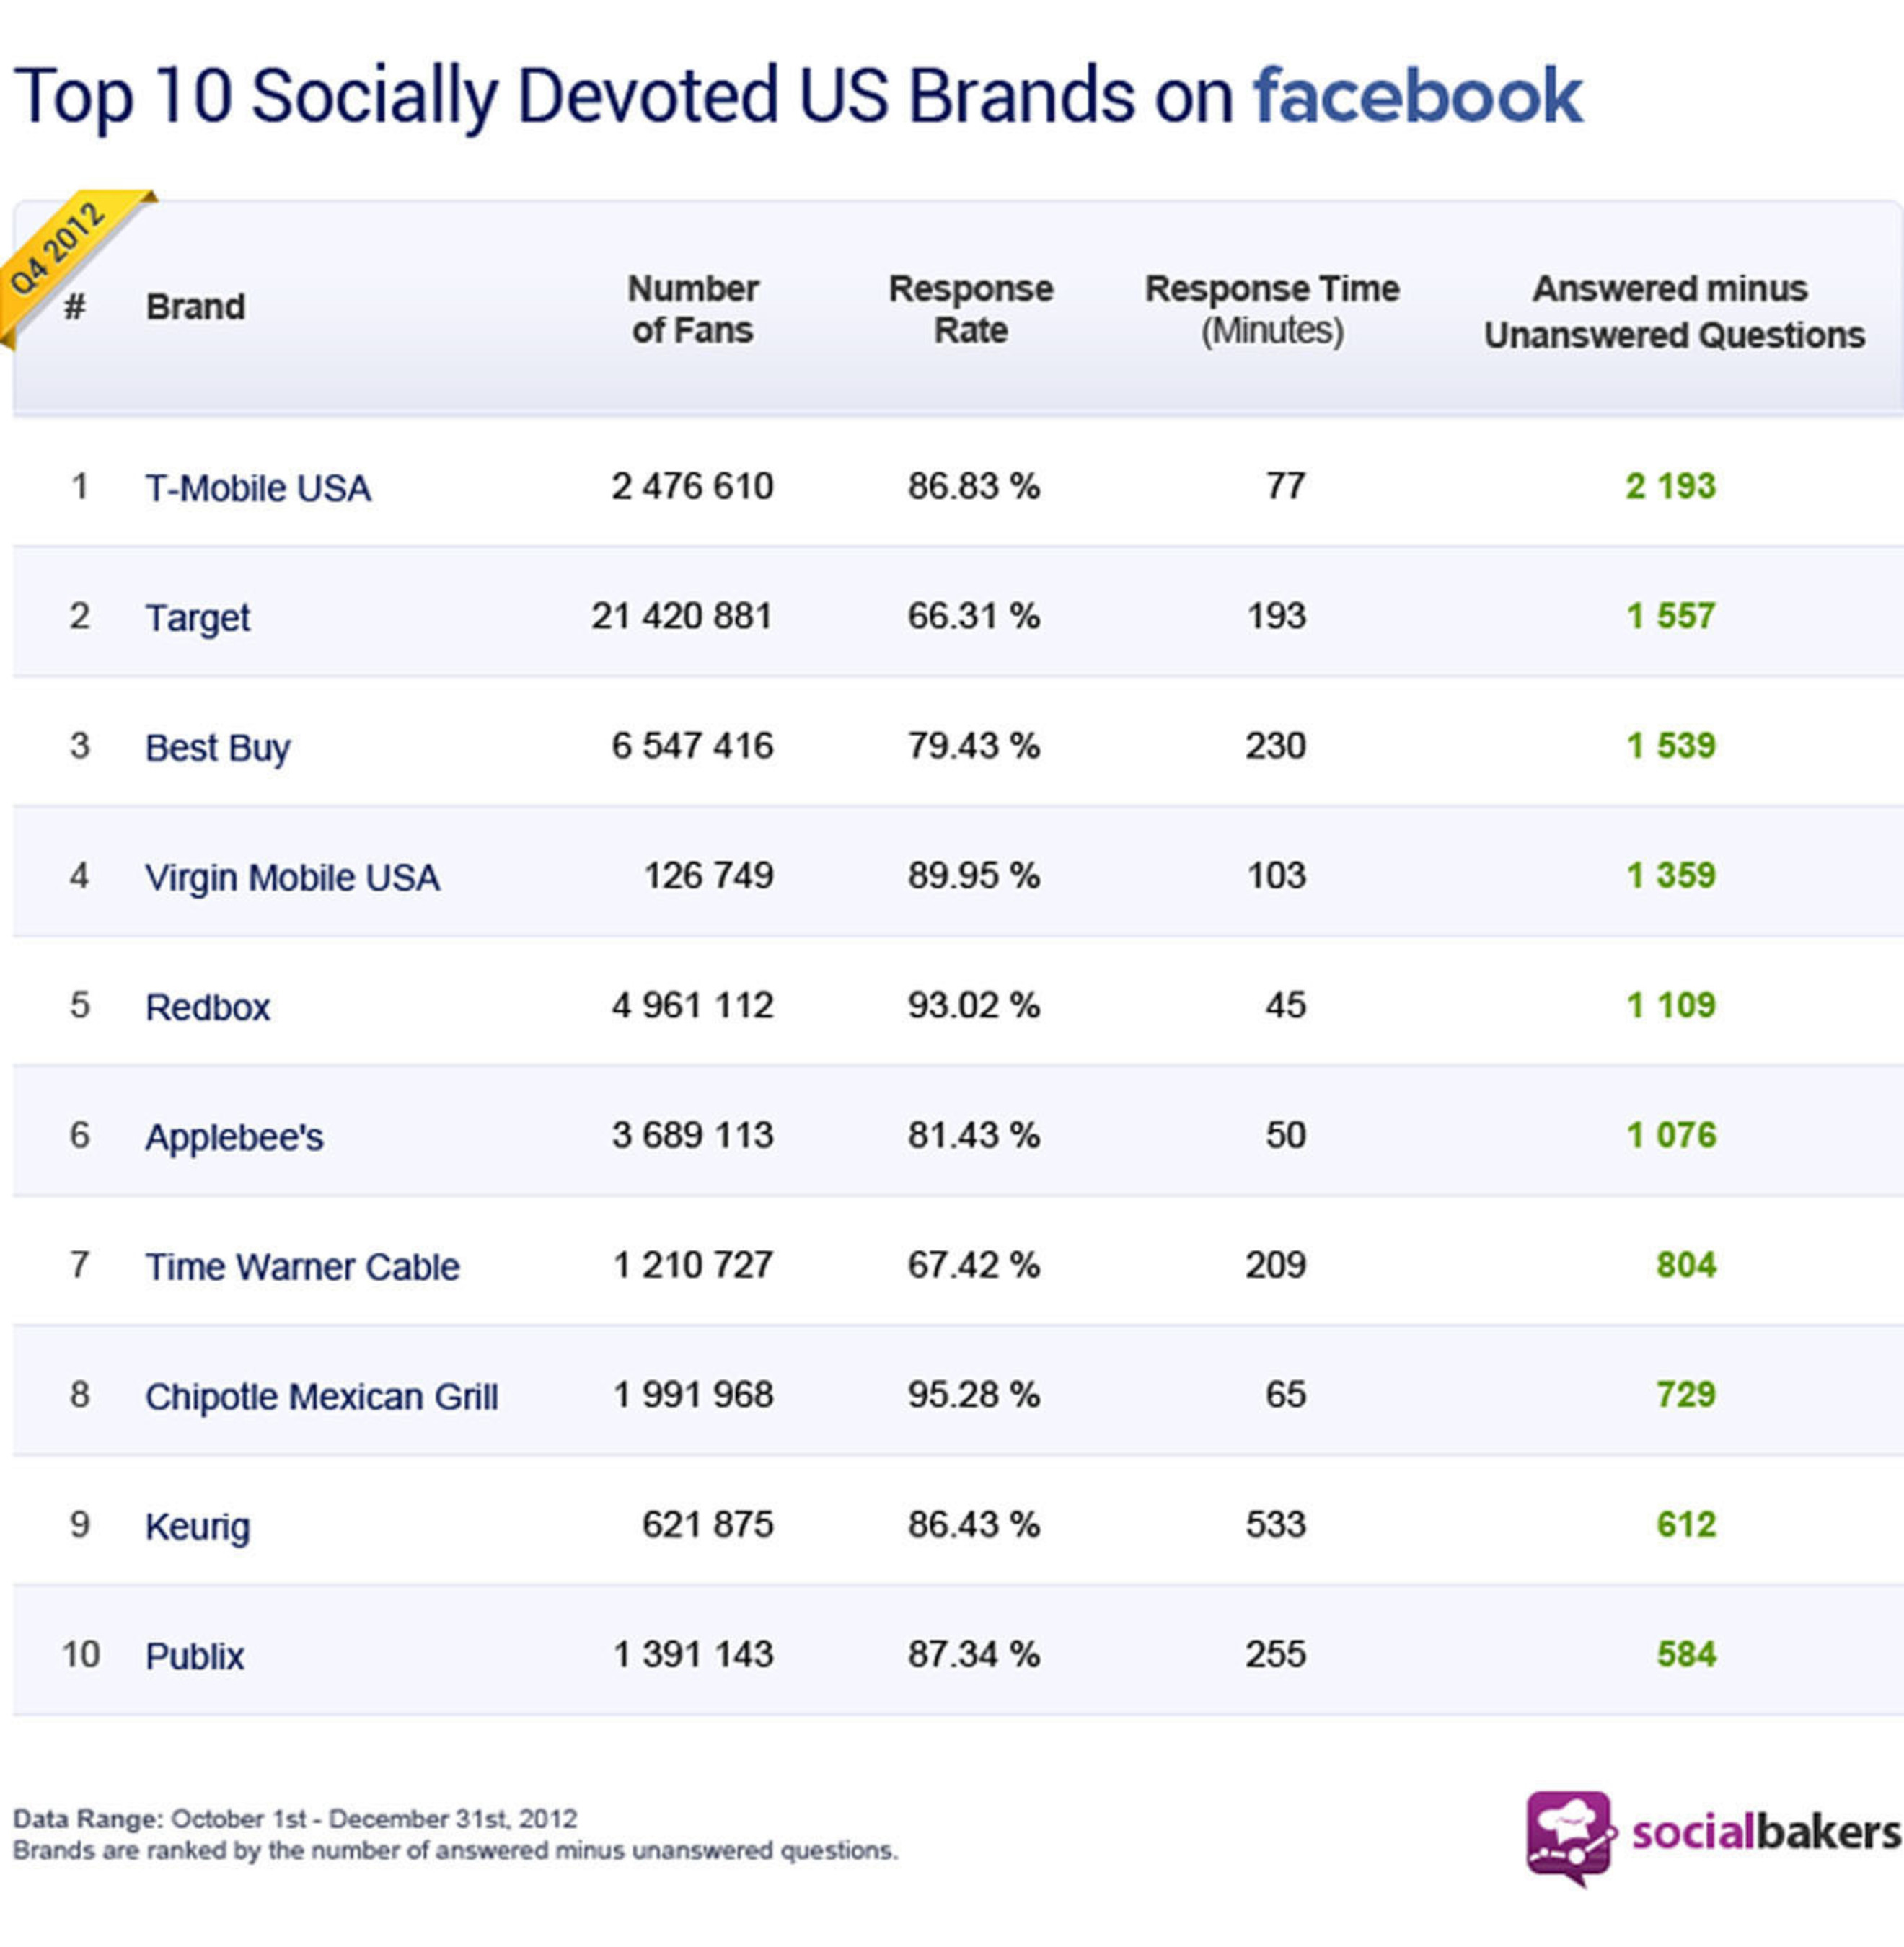 Socialbakers Top 10 Socially Devoted Brands in the U.S. (PRNewsFoto/Socialbakers) (PRNewsFoto/SOCIALBAKERS)